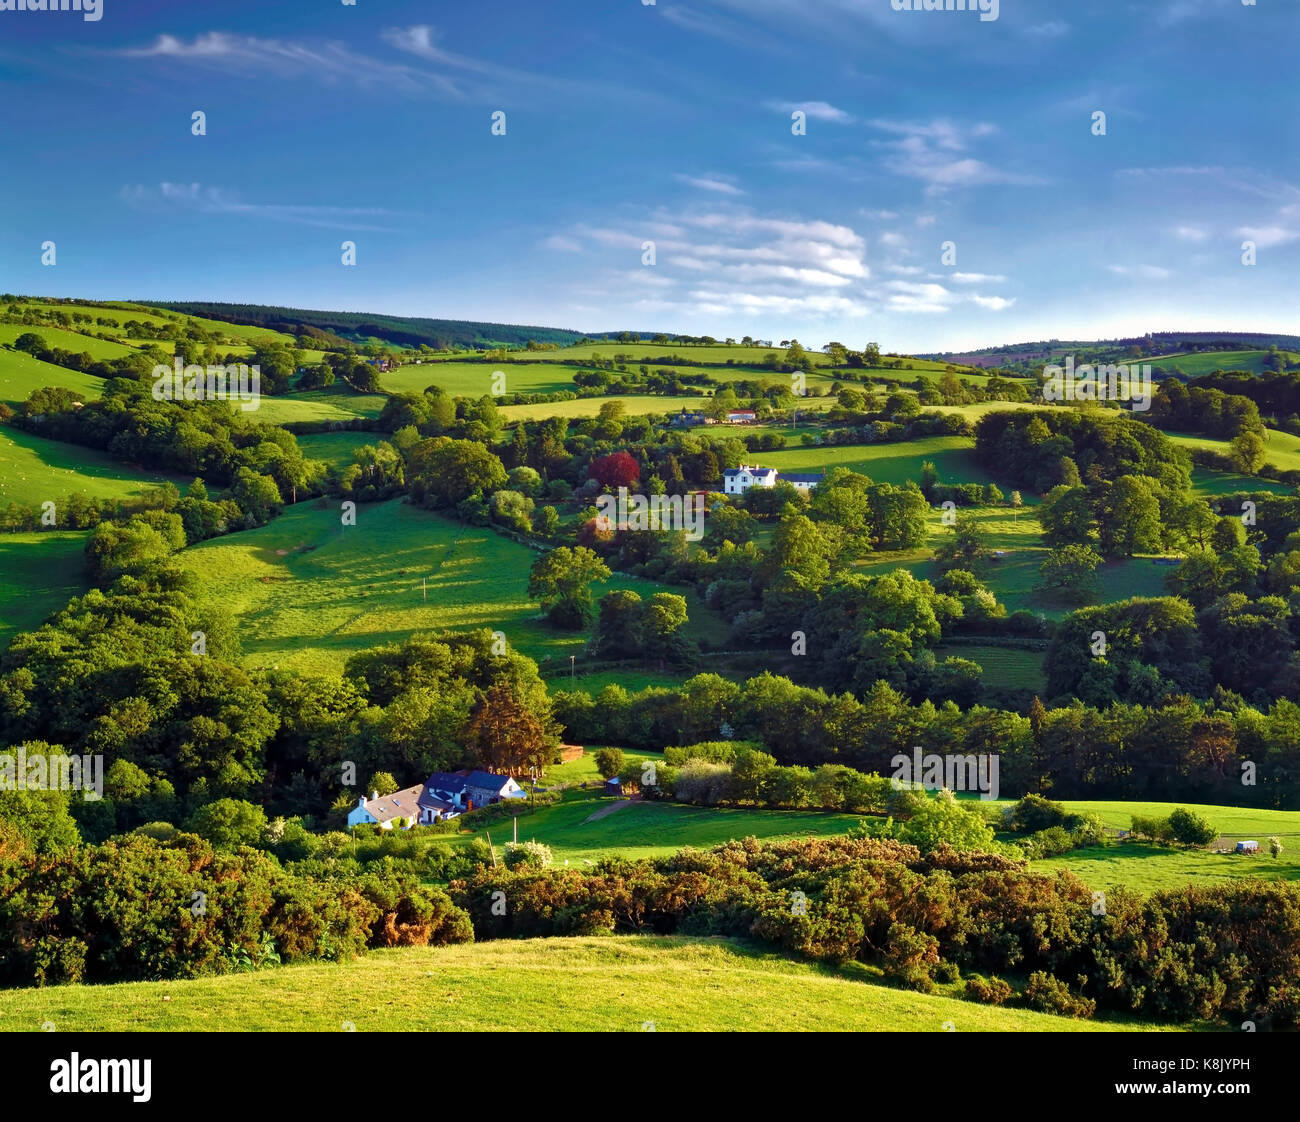 A late summer view of the hilly landscape of Clwyd, North Wales. - Stock Image